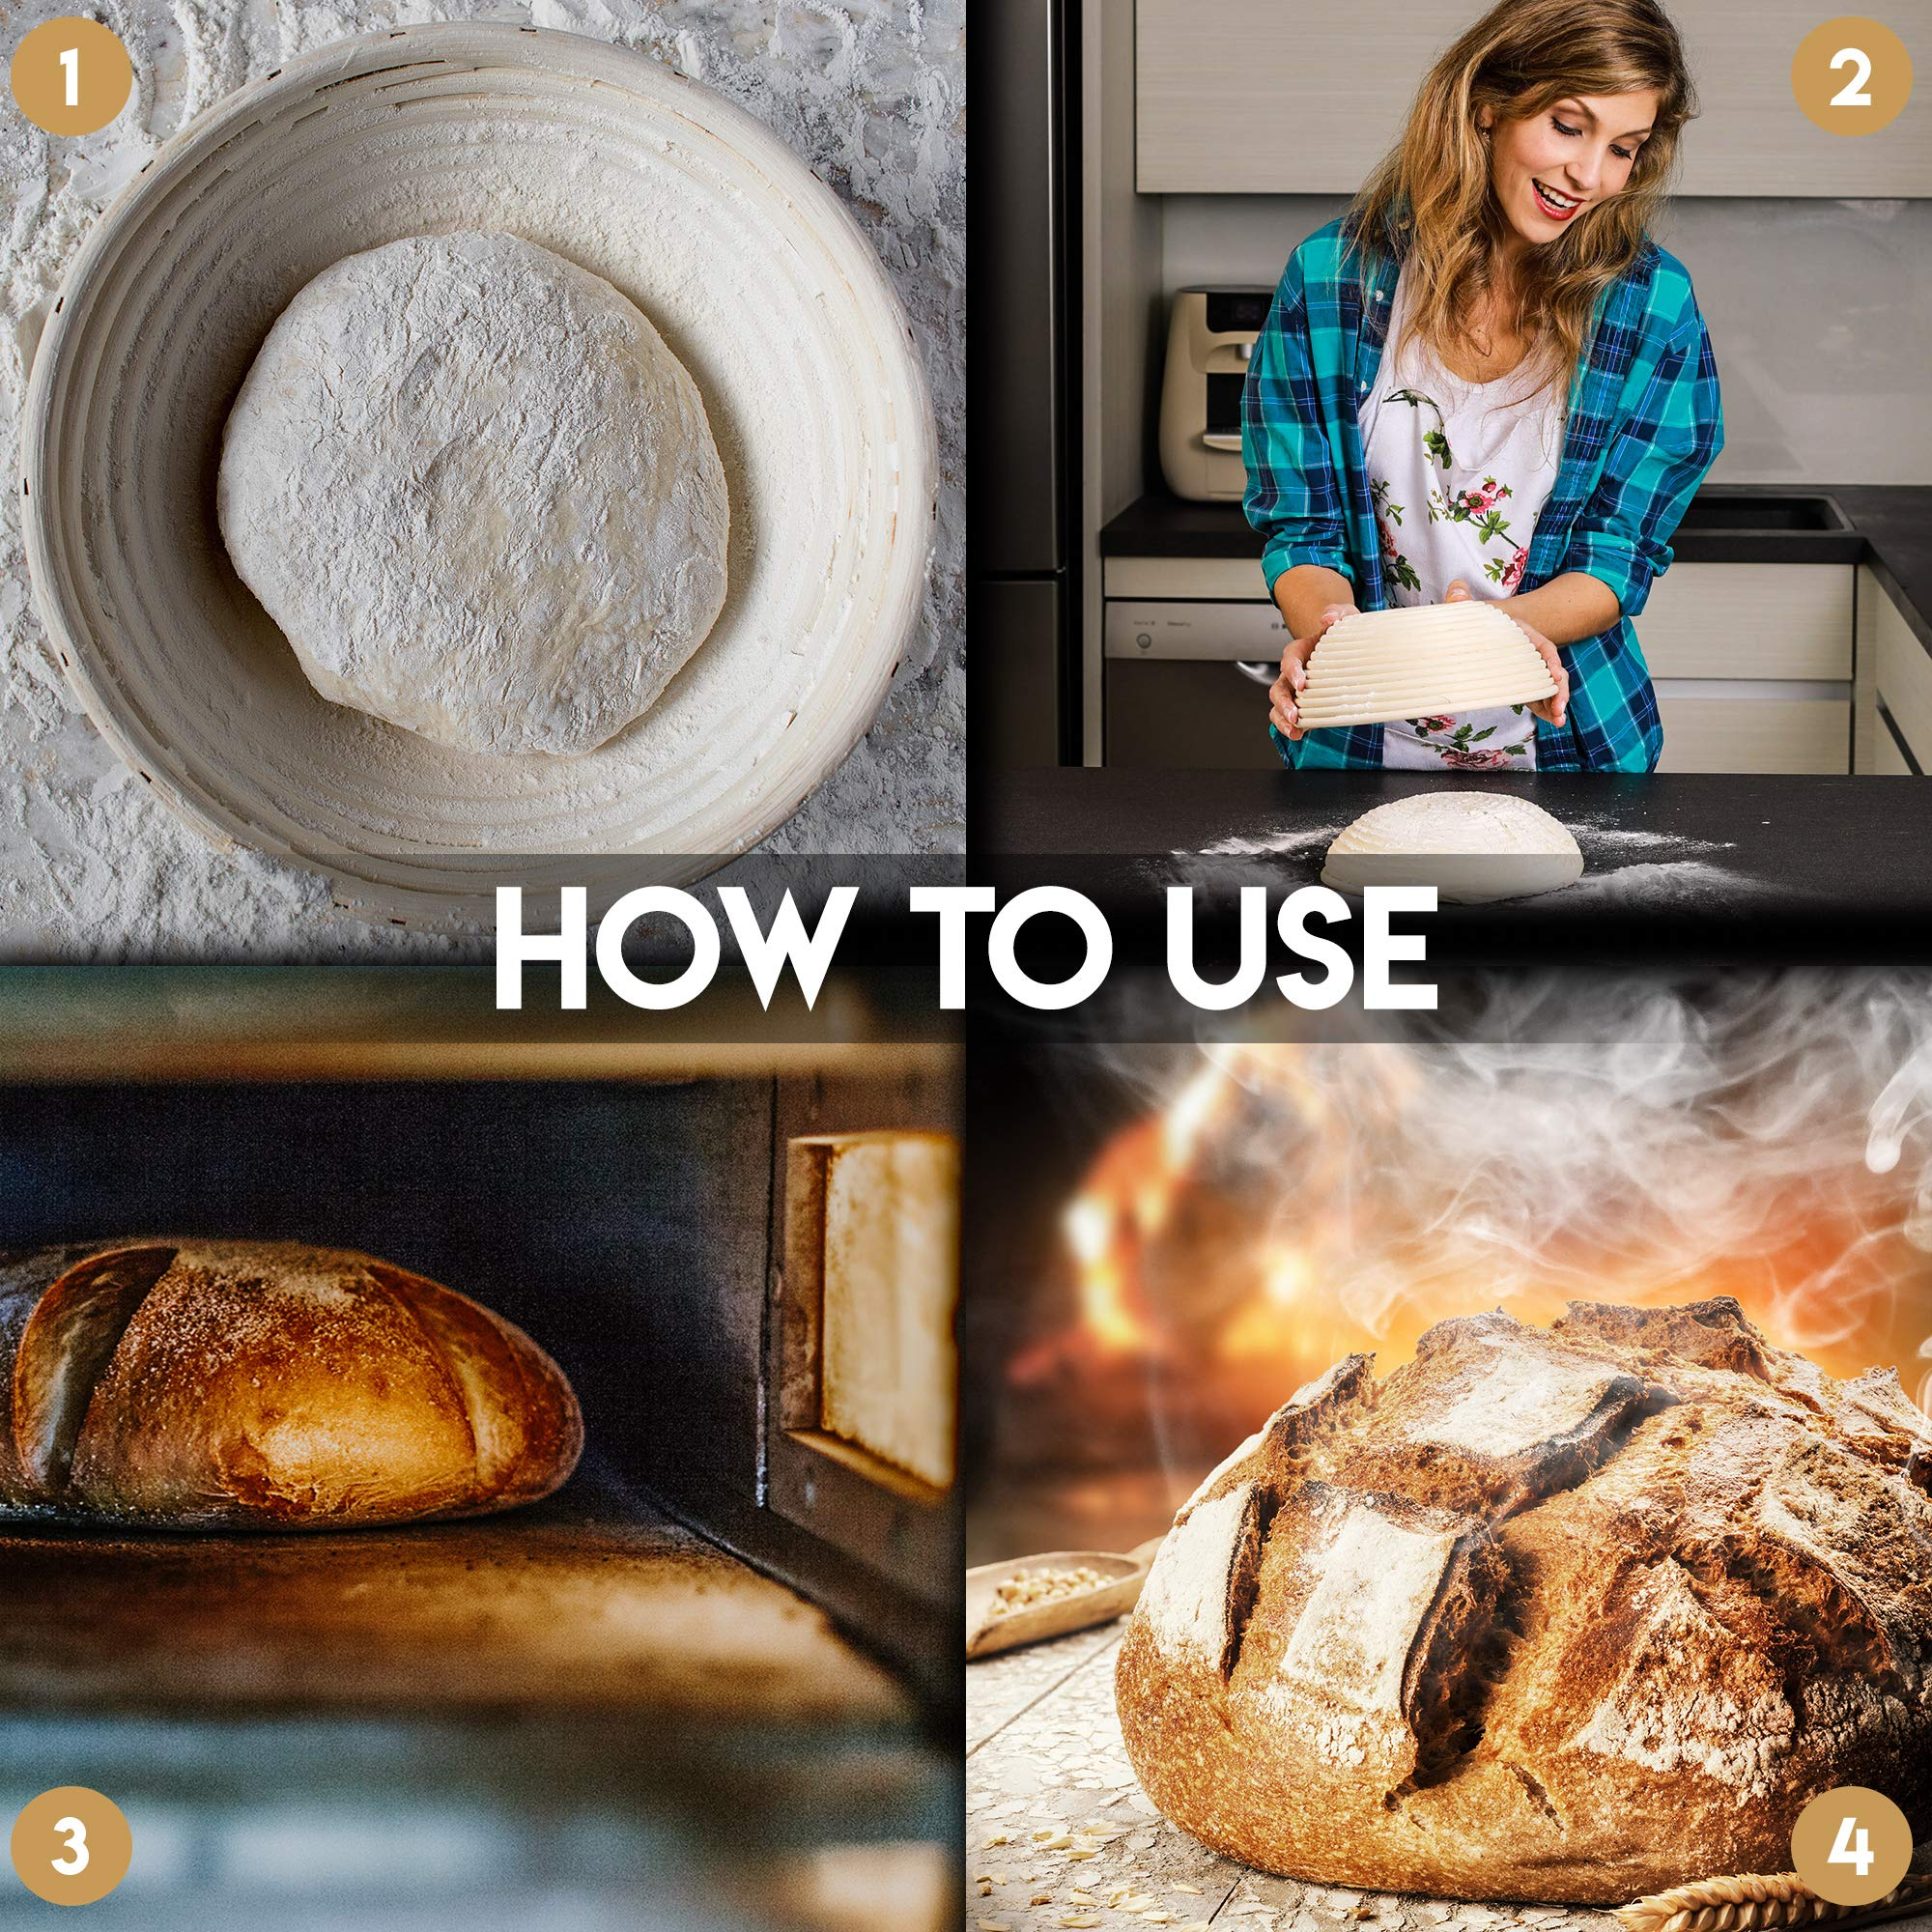 Banneton Bread Proofing Basket By Caesar Bread, 9 Inch Round Sourdough Brotform For Rising Dough Set, Include Cloth Liner, Scraper, Bread Lame, Brush & Recipe Book For Beginners & Professional Bakers by Caesar Bread (Image #3)